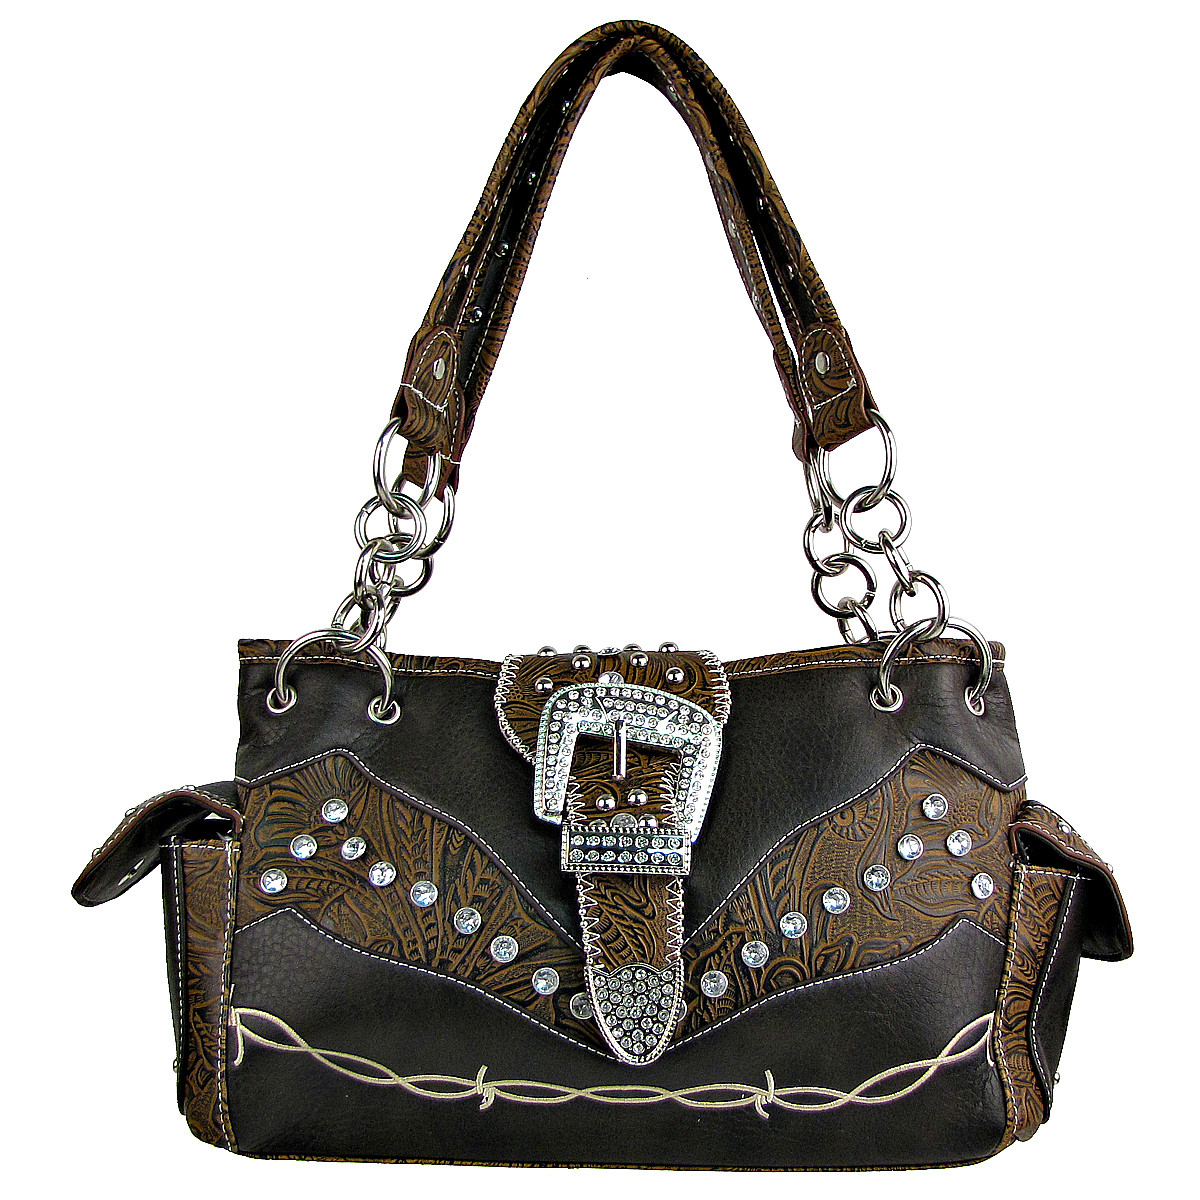 BROWN TOOLED RHINESTONE BUCKLE LOOK WESTERN SHOULDER HANDBAG HB1-C1009BRN